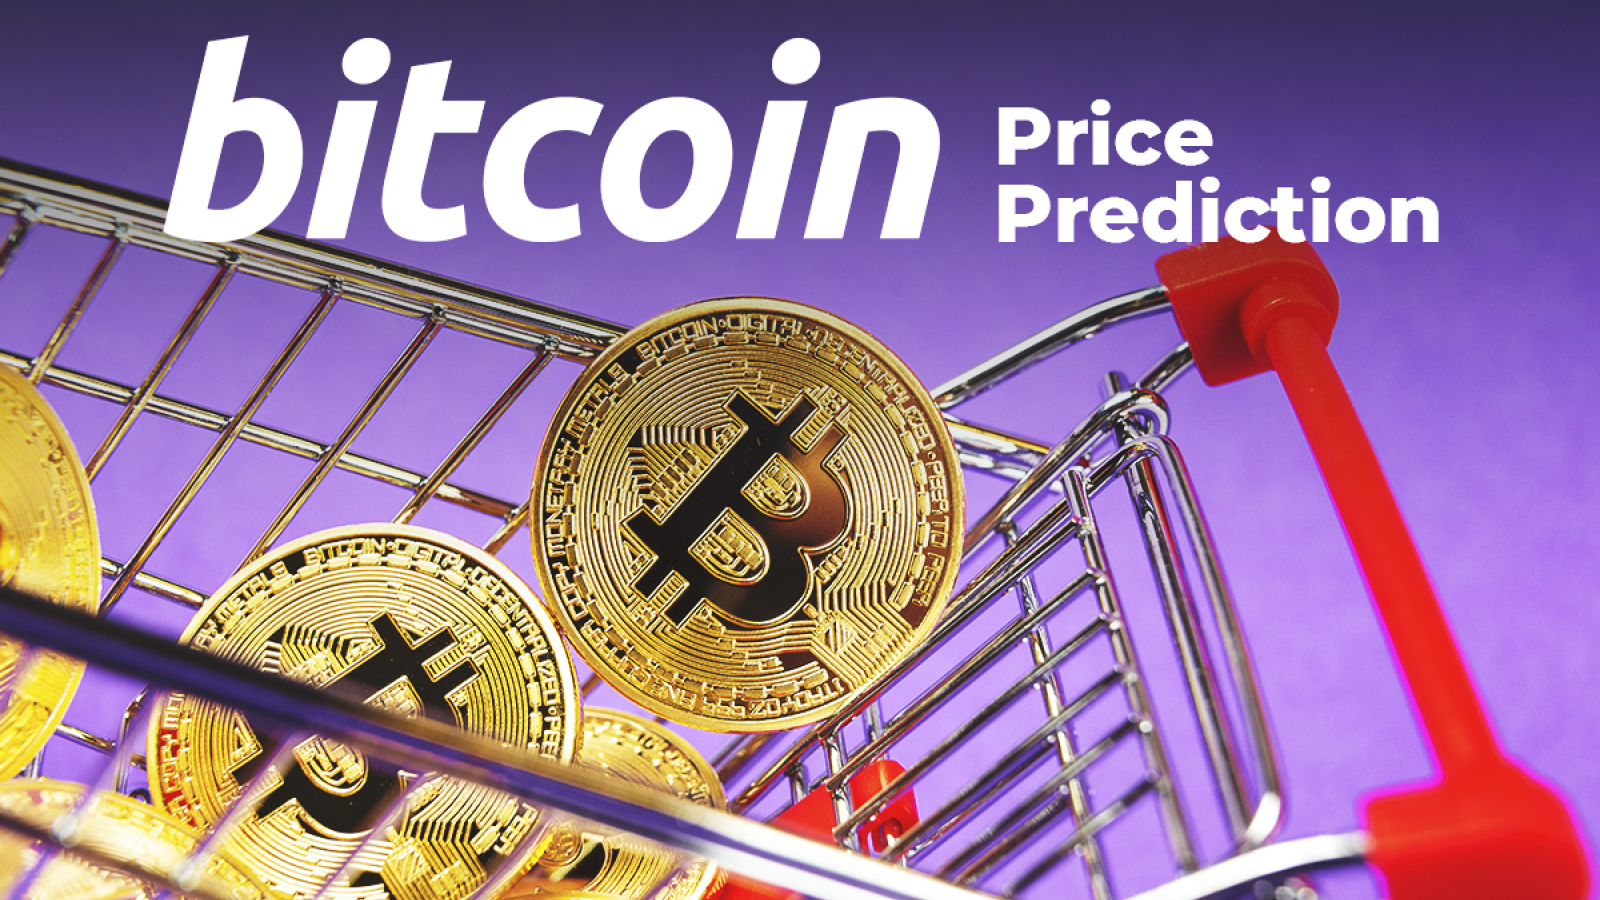 Worst Bitcoin Price Prediction of 2019